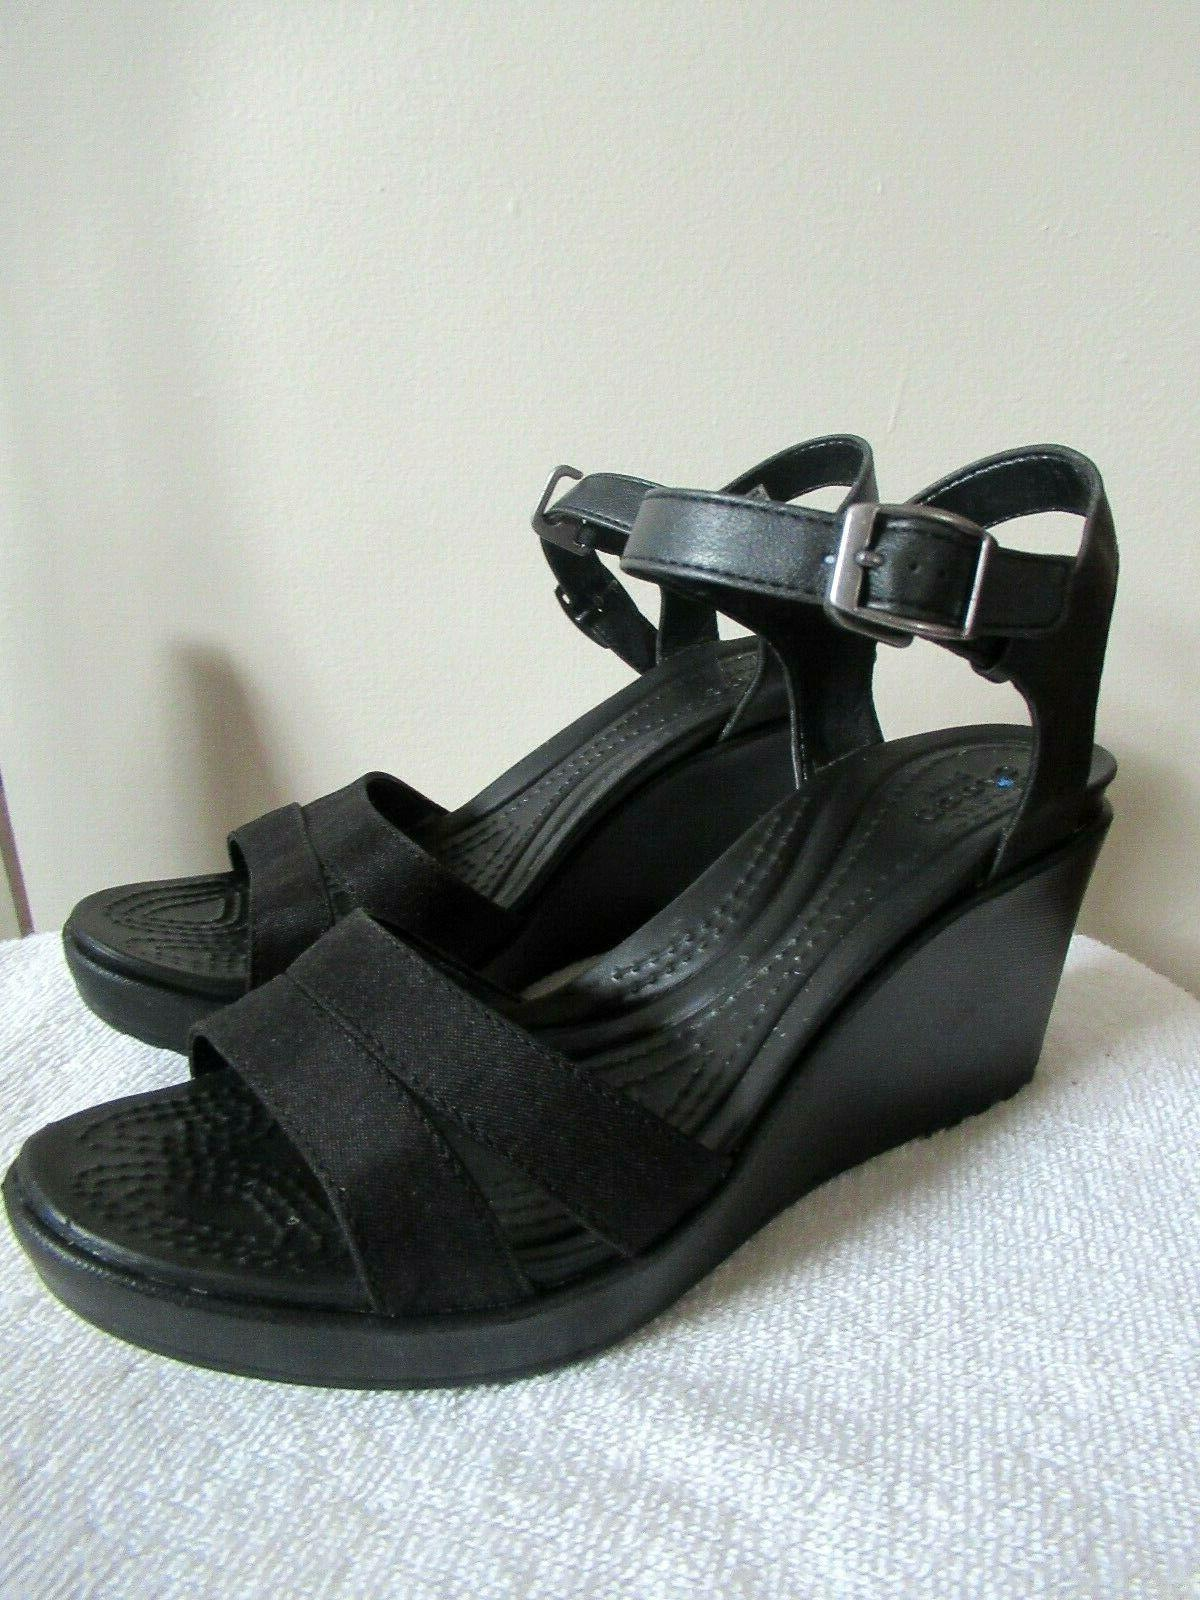 womens leigh sandal wedge black size 8